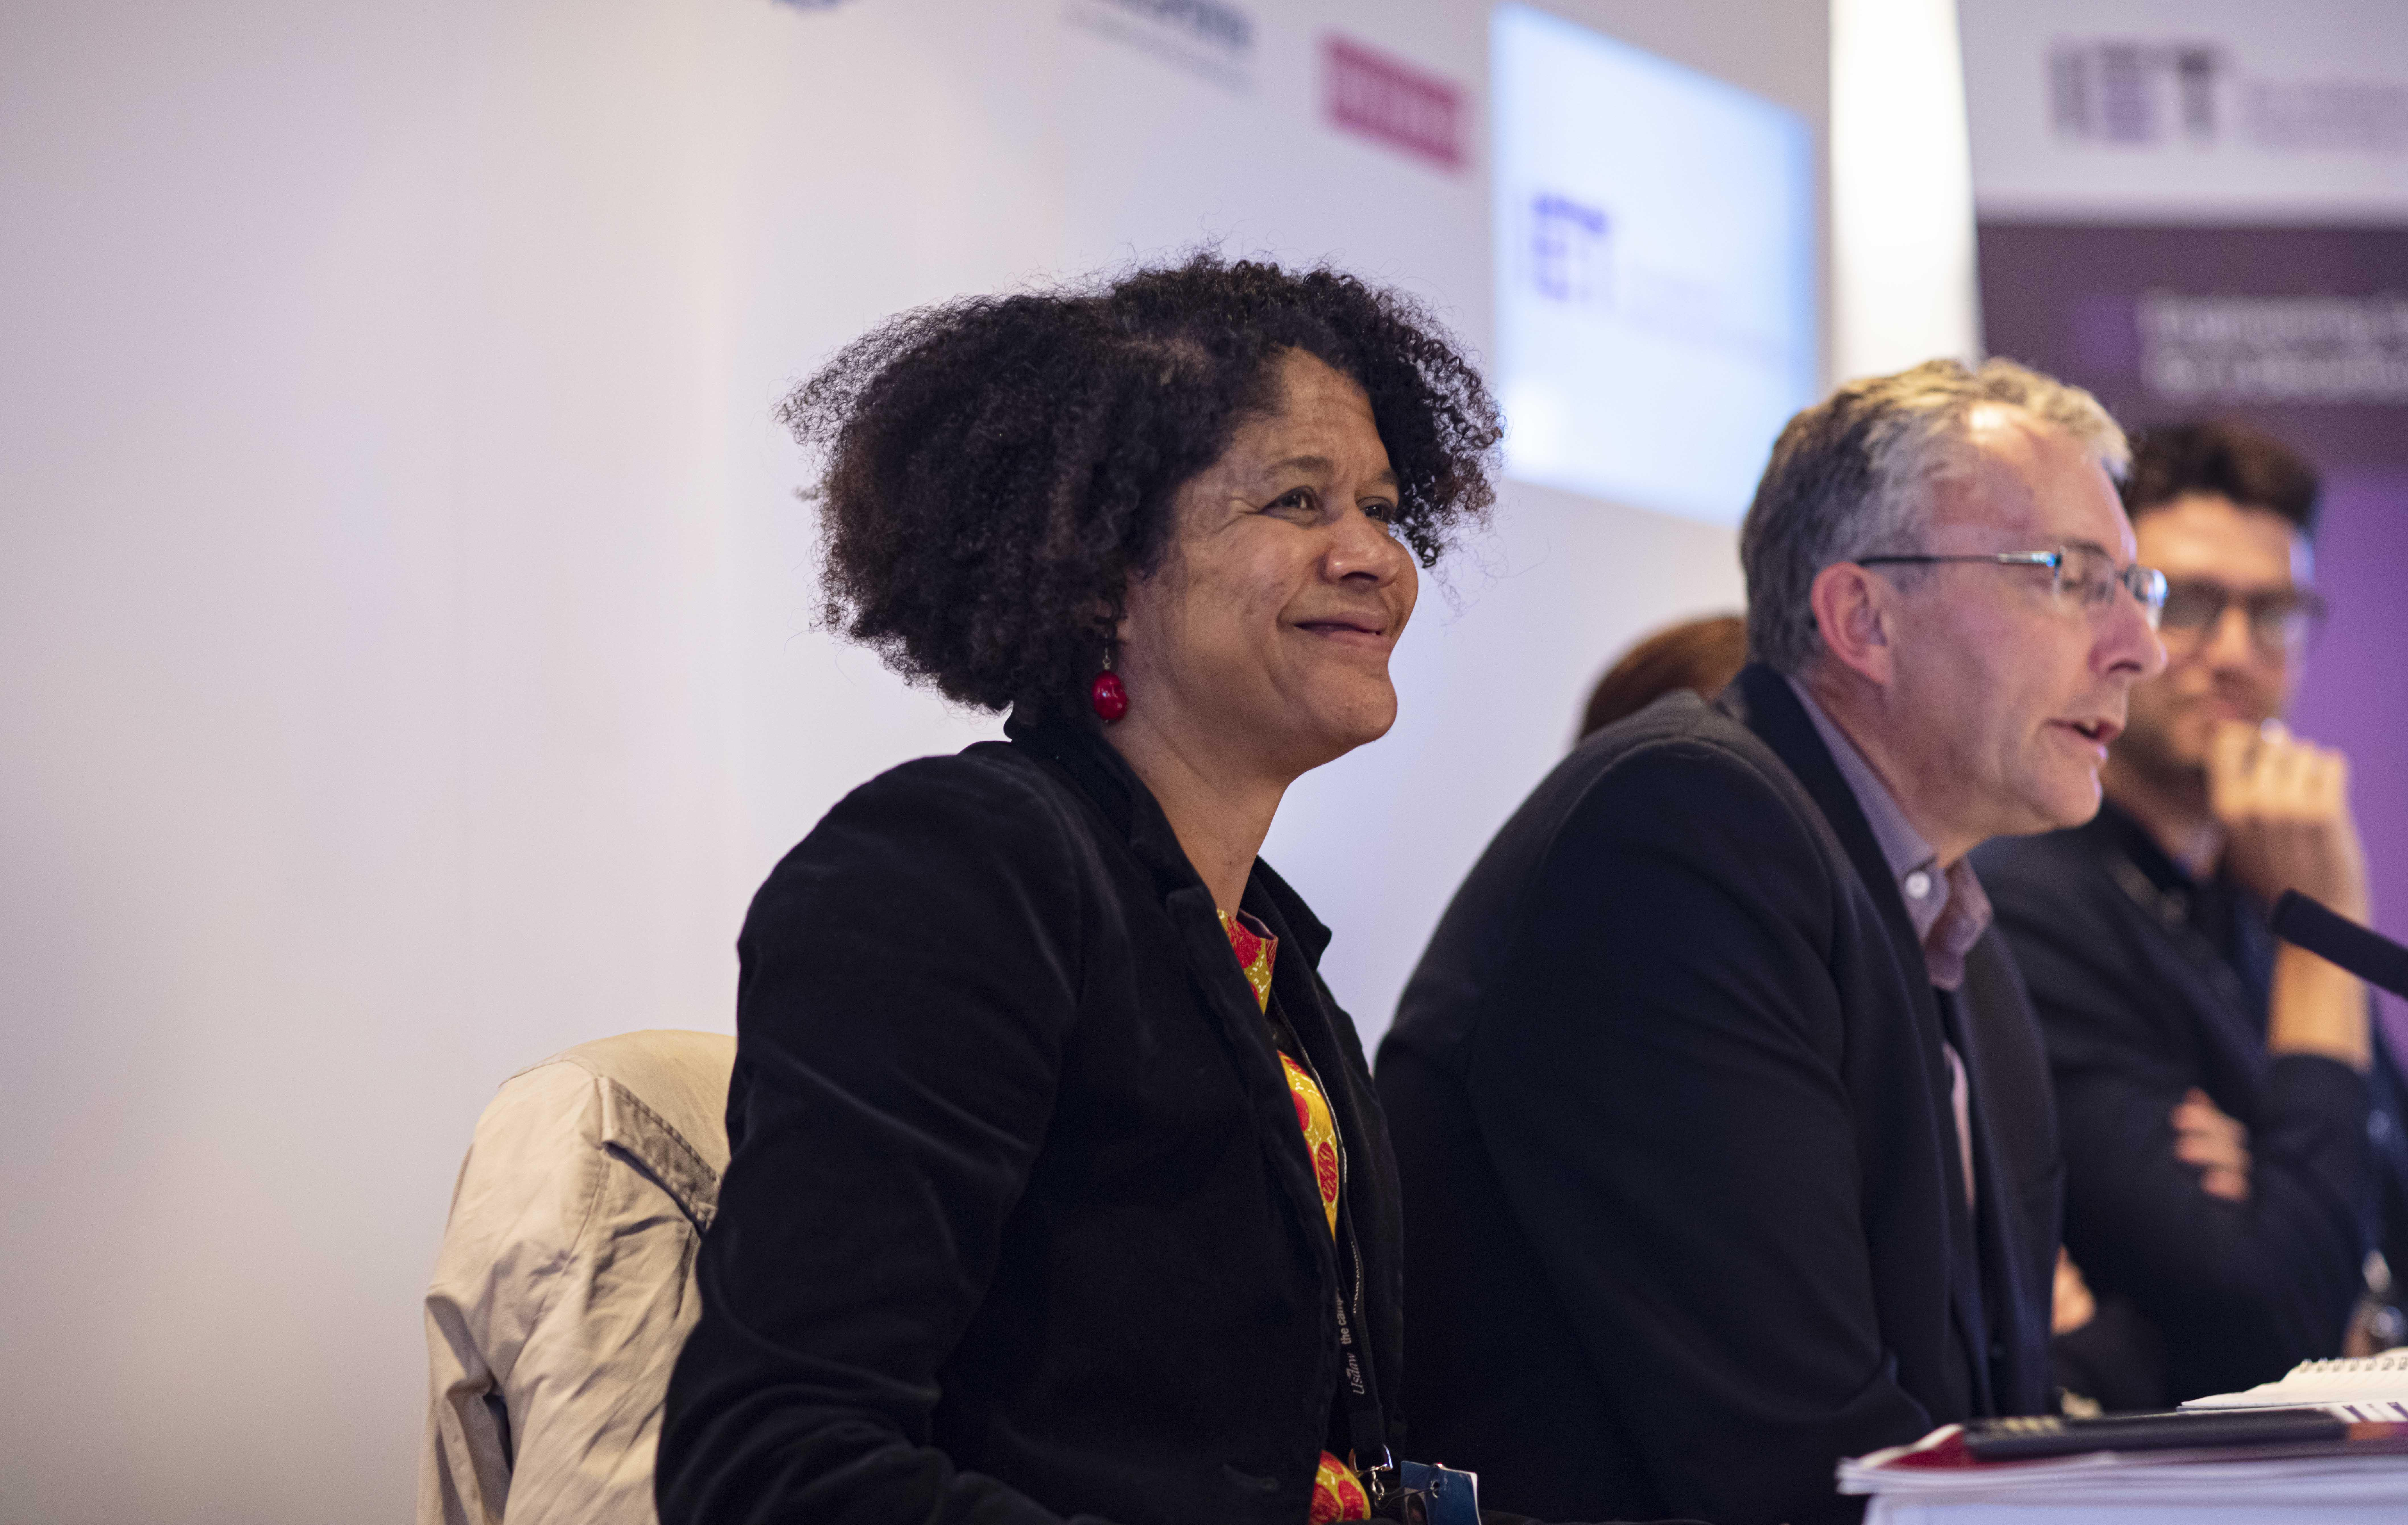 Chi Onwurah MP speaking at IET's Engineering Solutions for a Decarbonised World Fringe